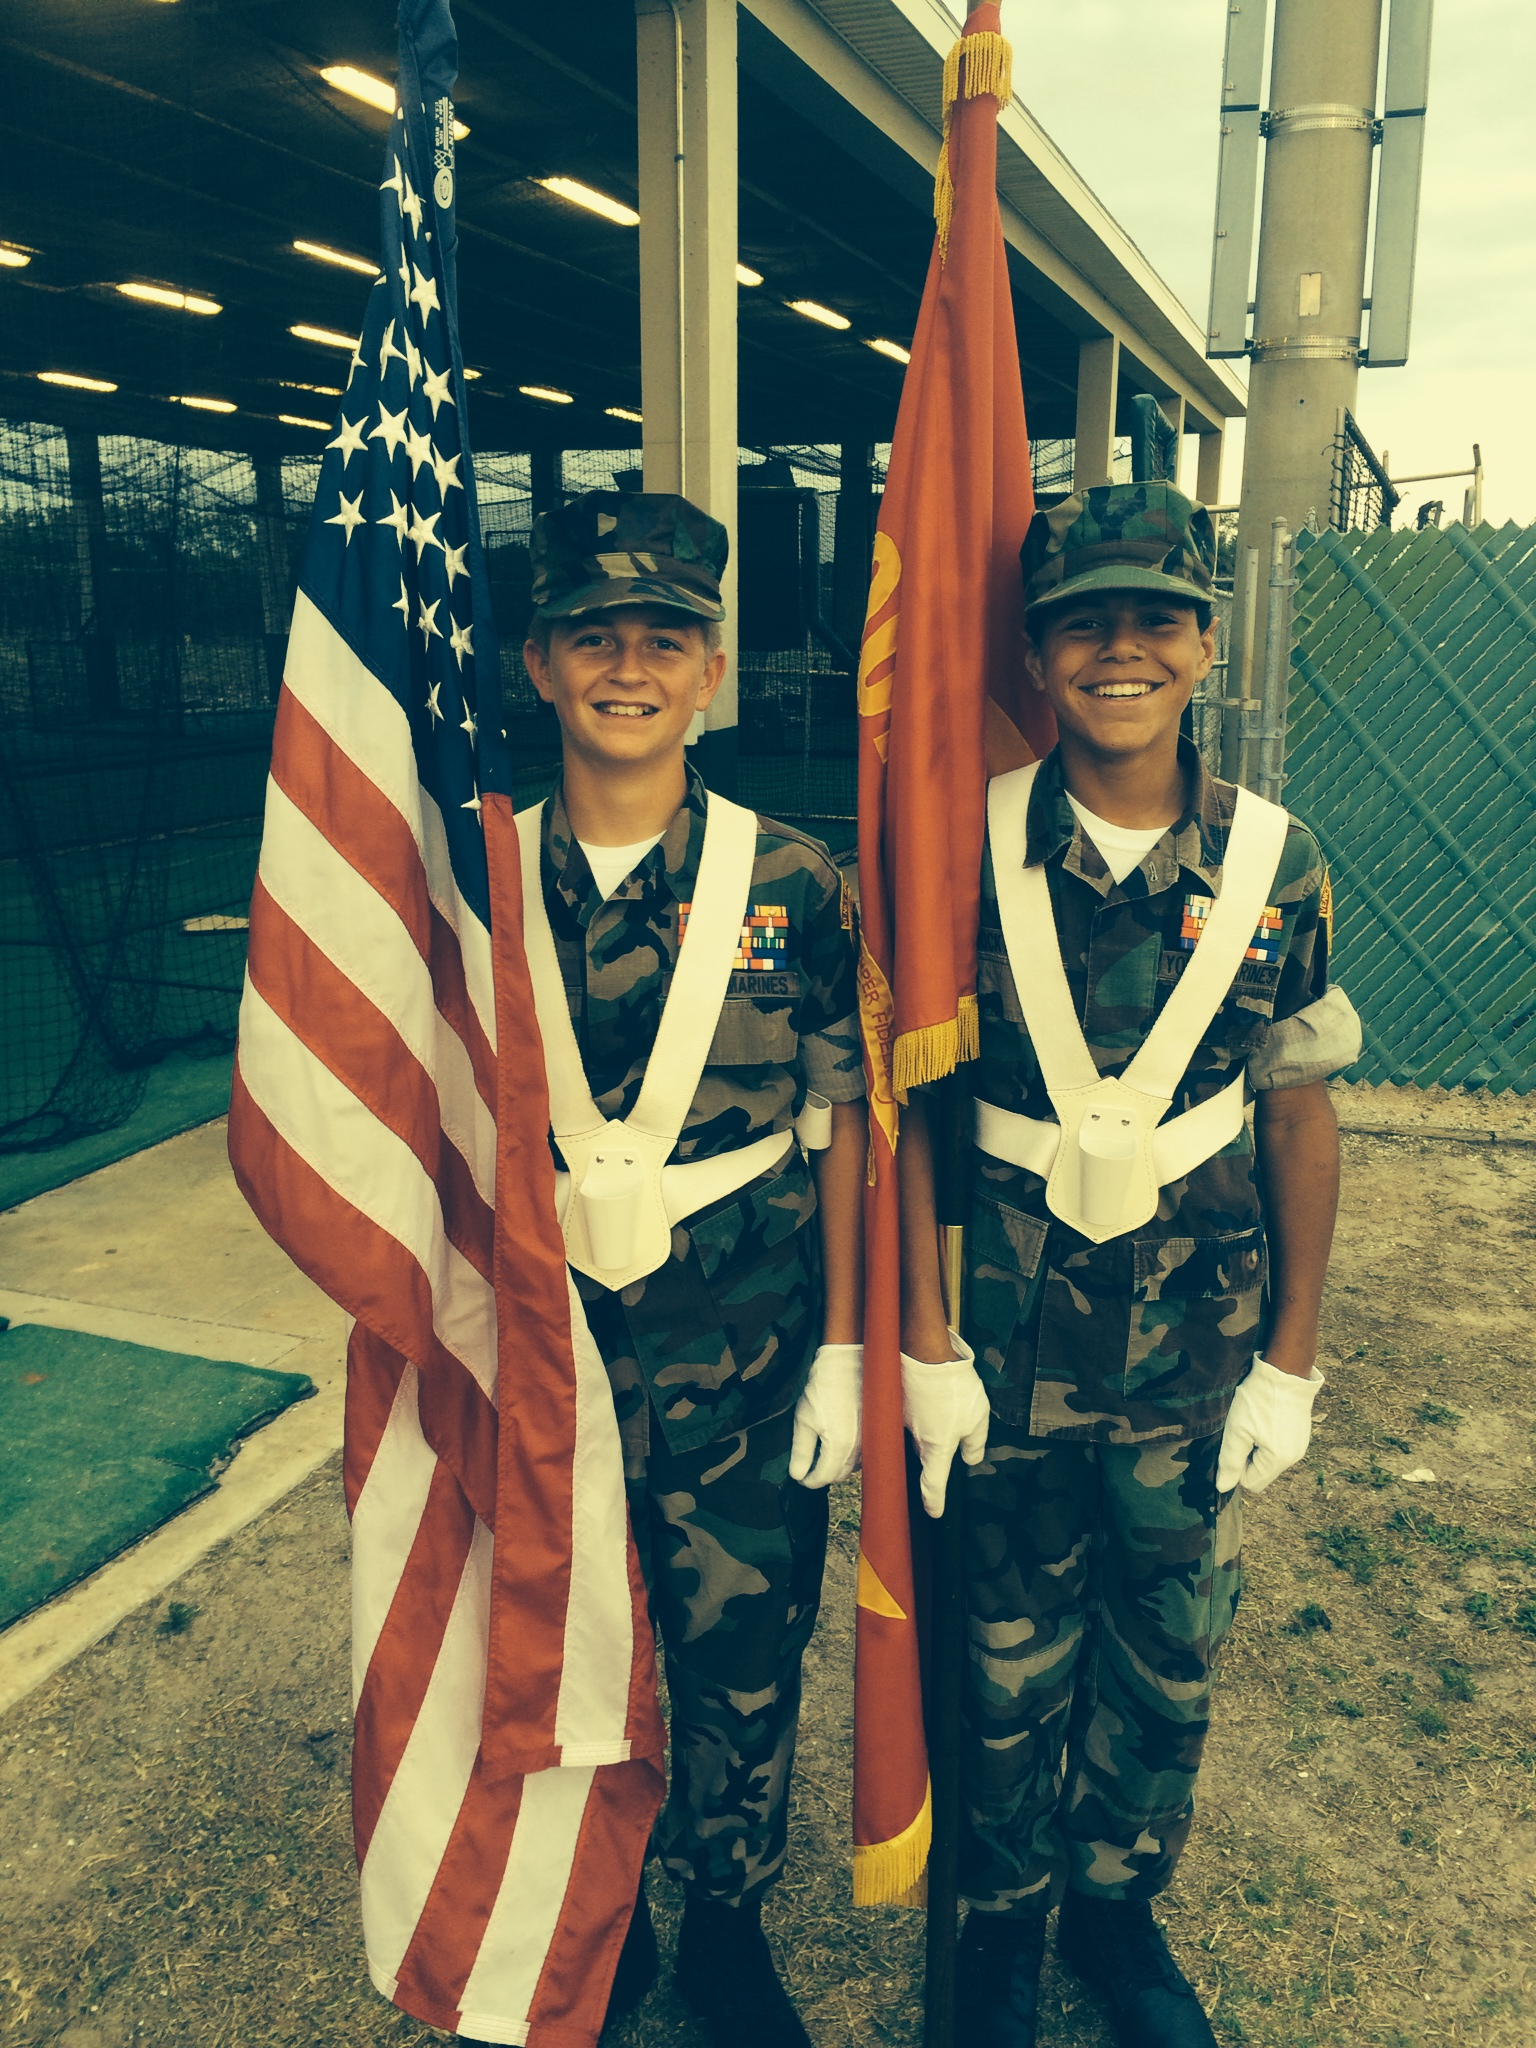 The Florida Burn is proud of our Young Marines, Kevin Dubrule and ...